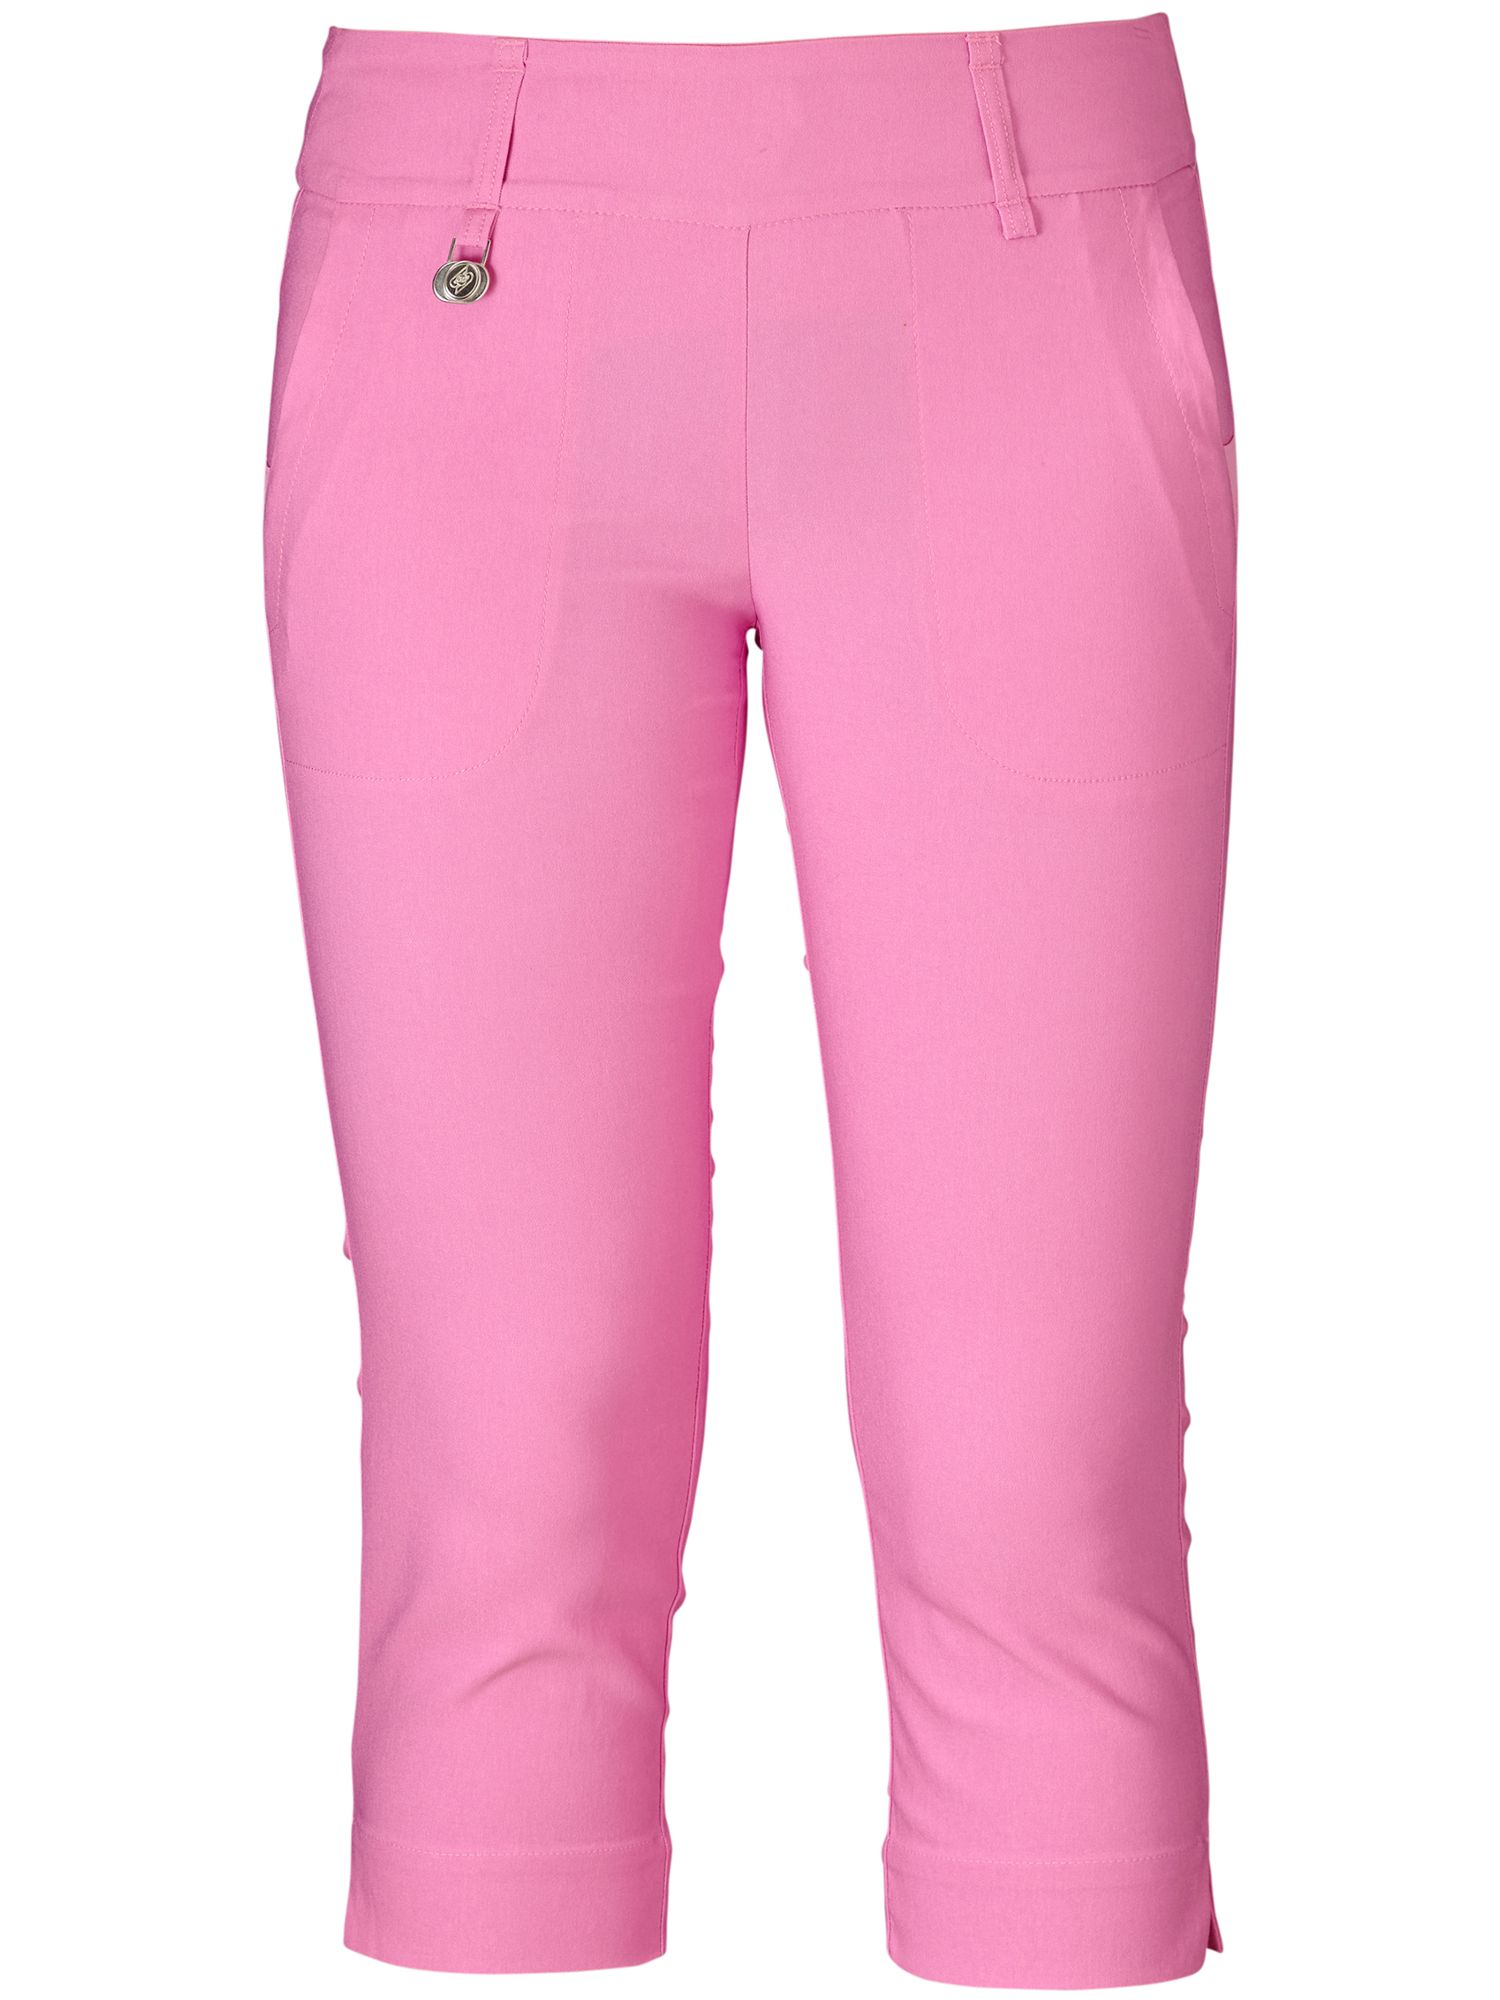 Daily Sports Magic Capri, Pink